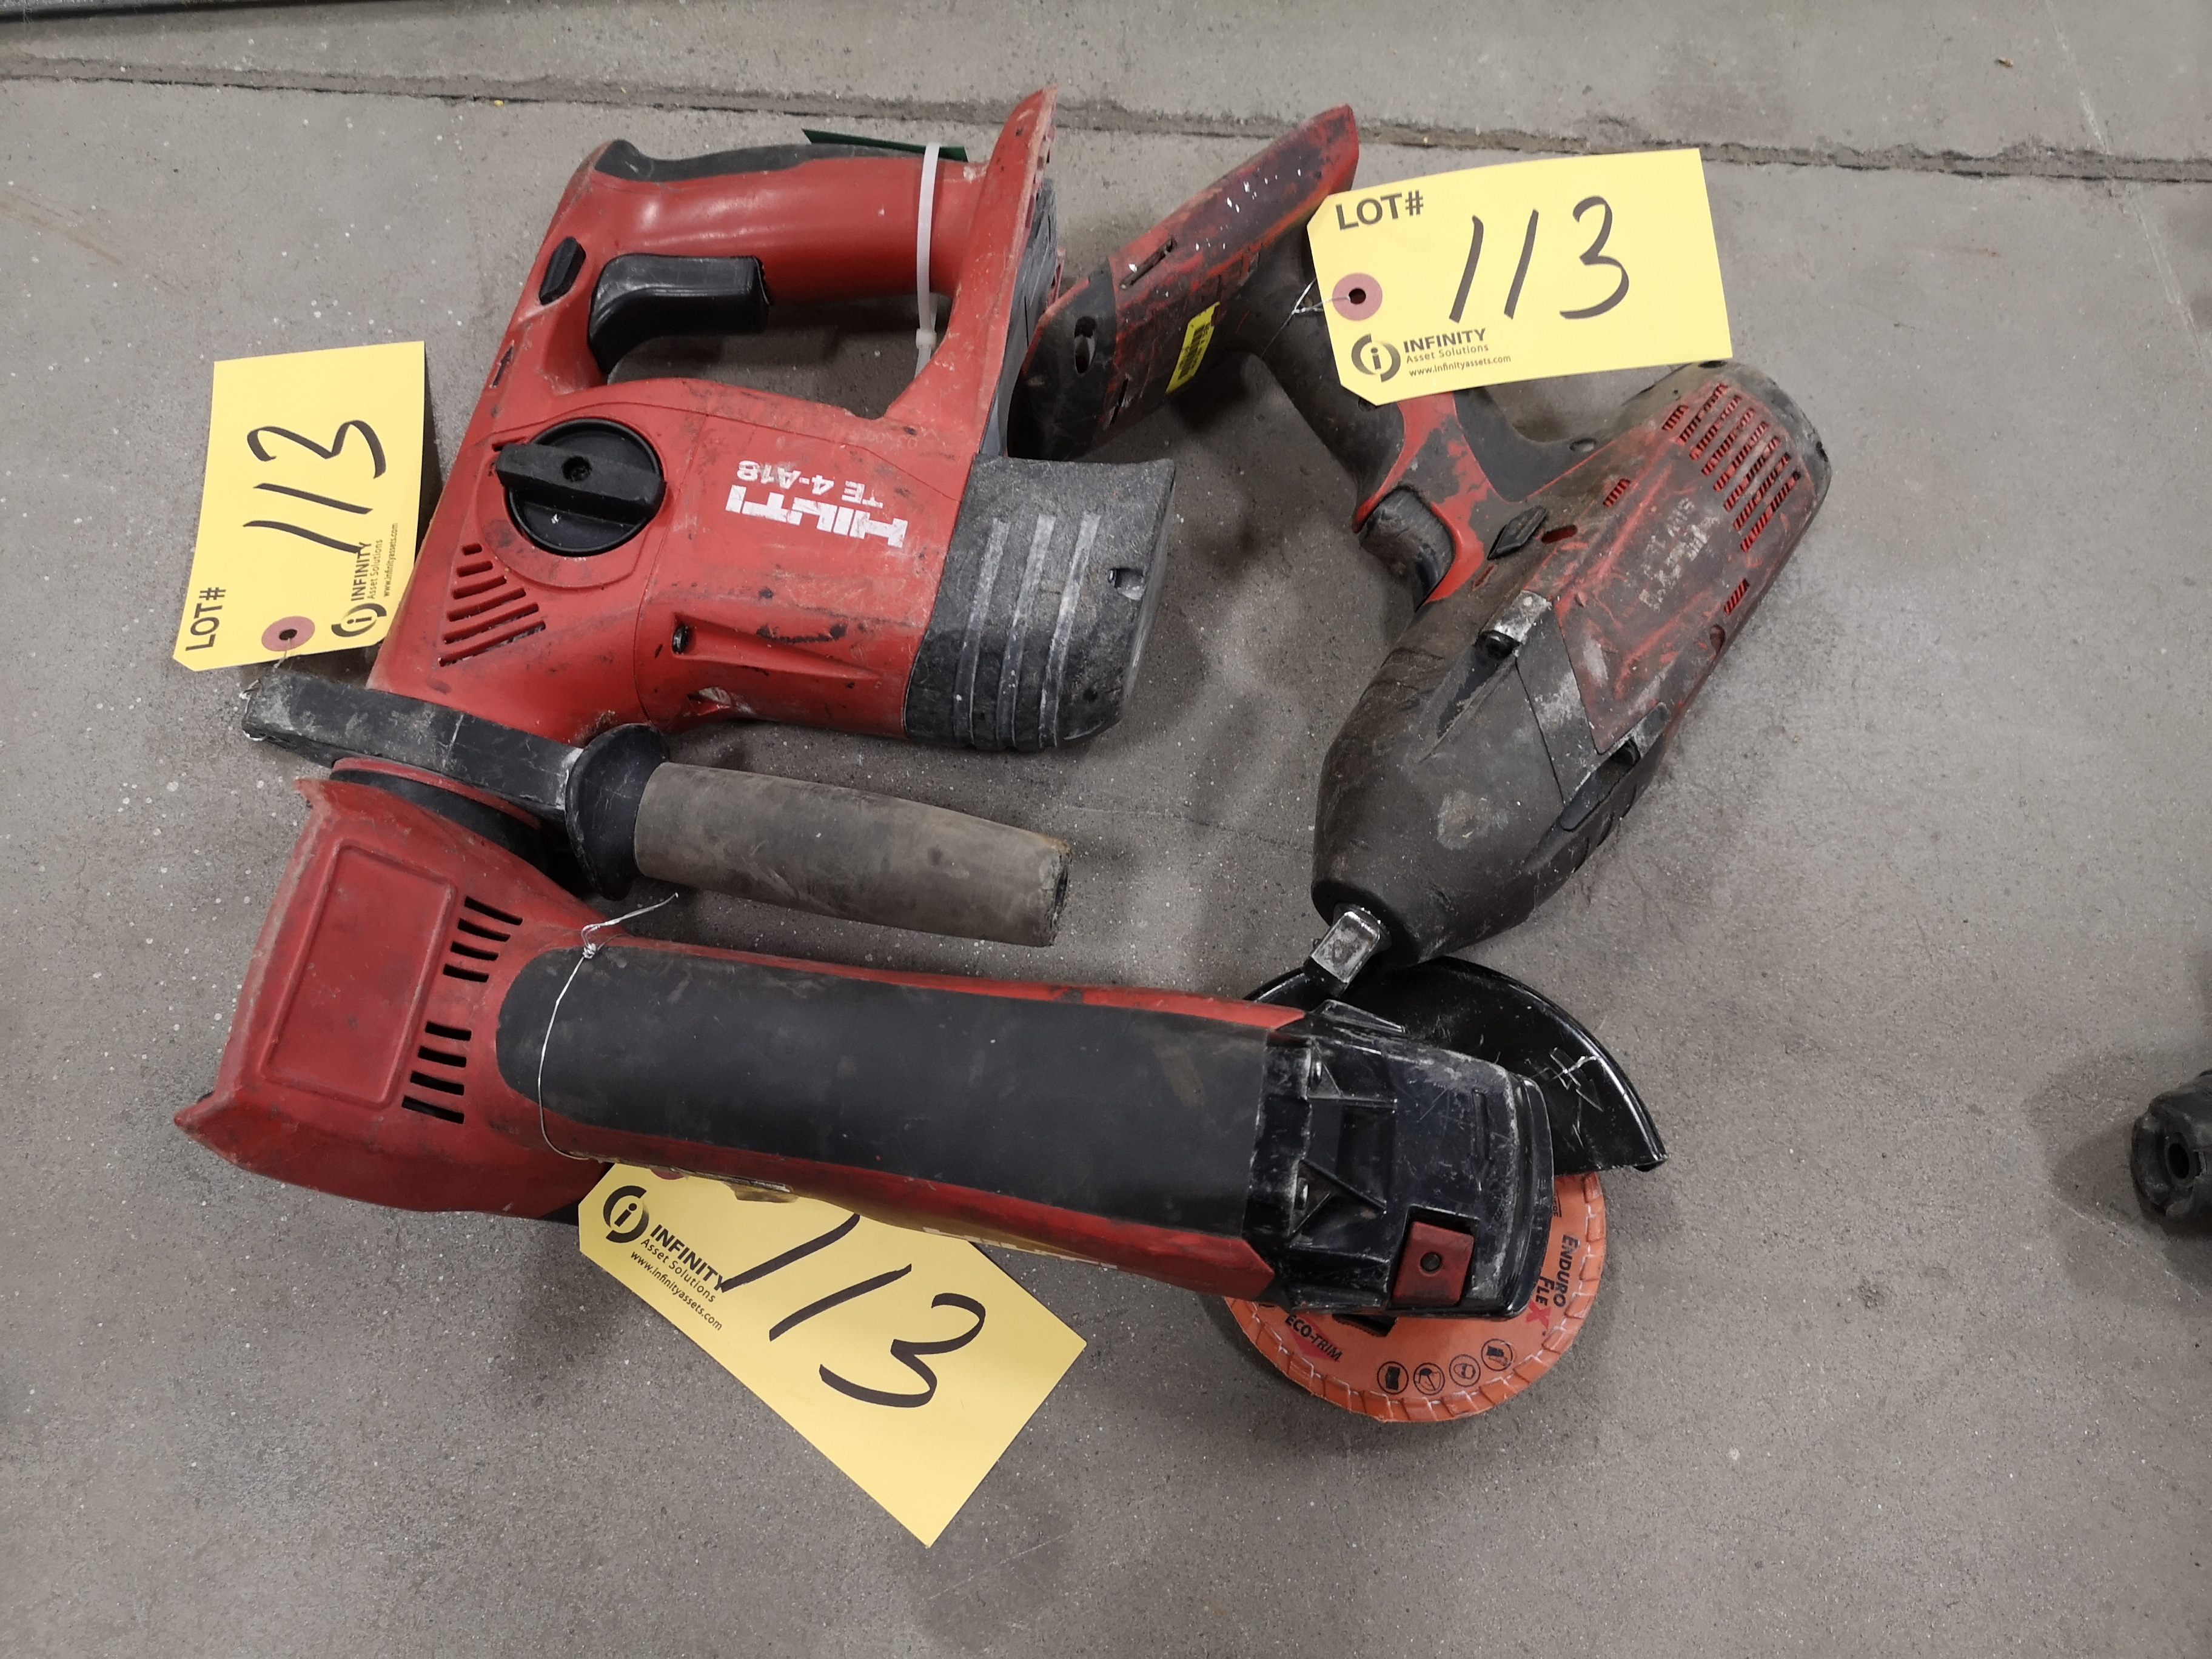 HILTI TE4-A18, S1W18T-A AND AG 500-A18 (NO BATTERY OR CHARGER) (LOCATED AT 1135 STELLAR DRIVE,